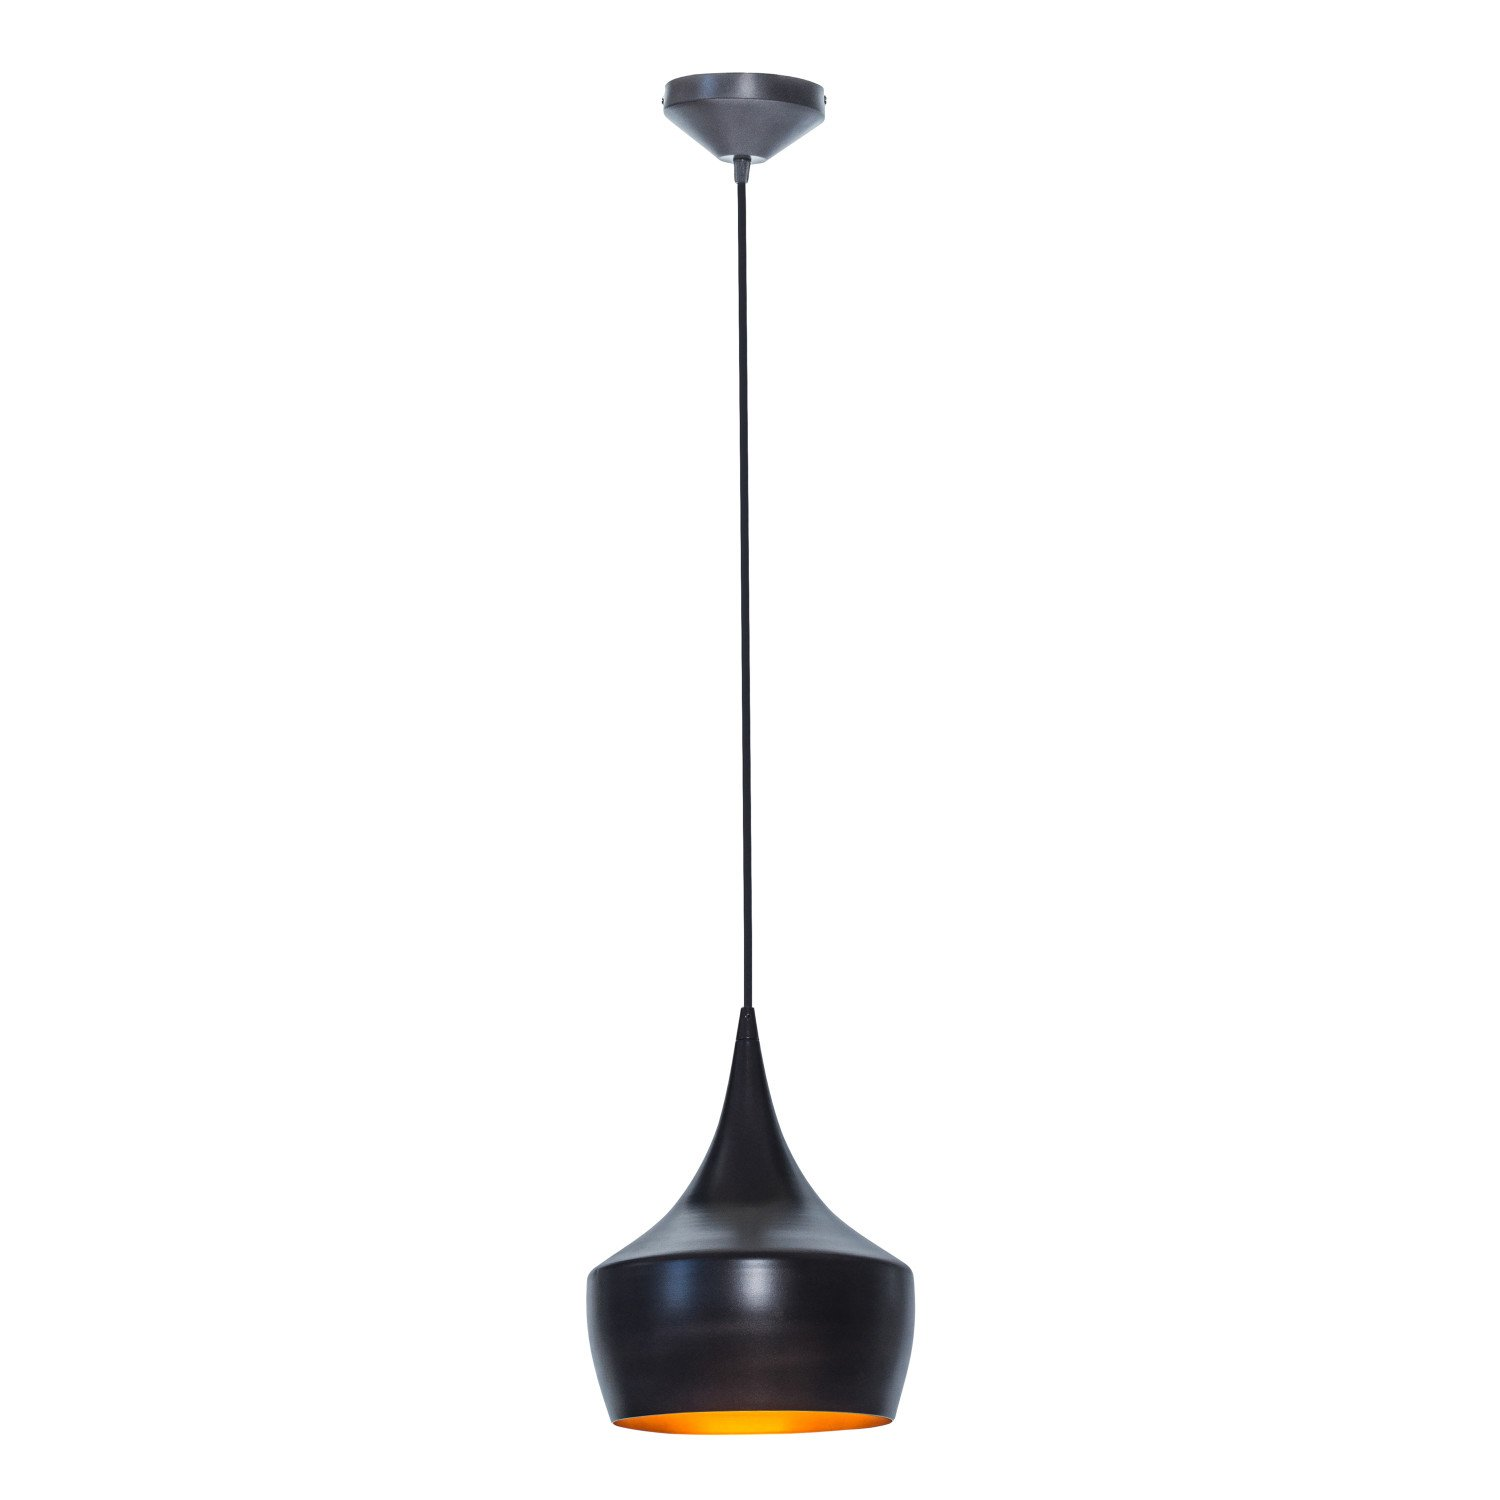 Globe Electric 1-Light Small Modern Industrial Pendant, Oil Rubbed Bronze, Gold Inner Finish, 1x A19 60W Bulb (sold separately), 63871